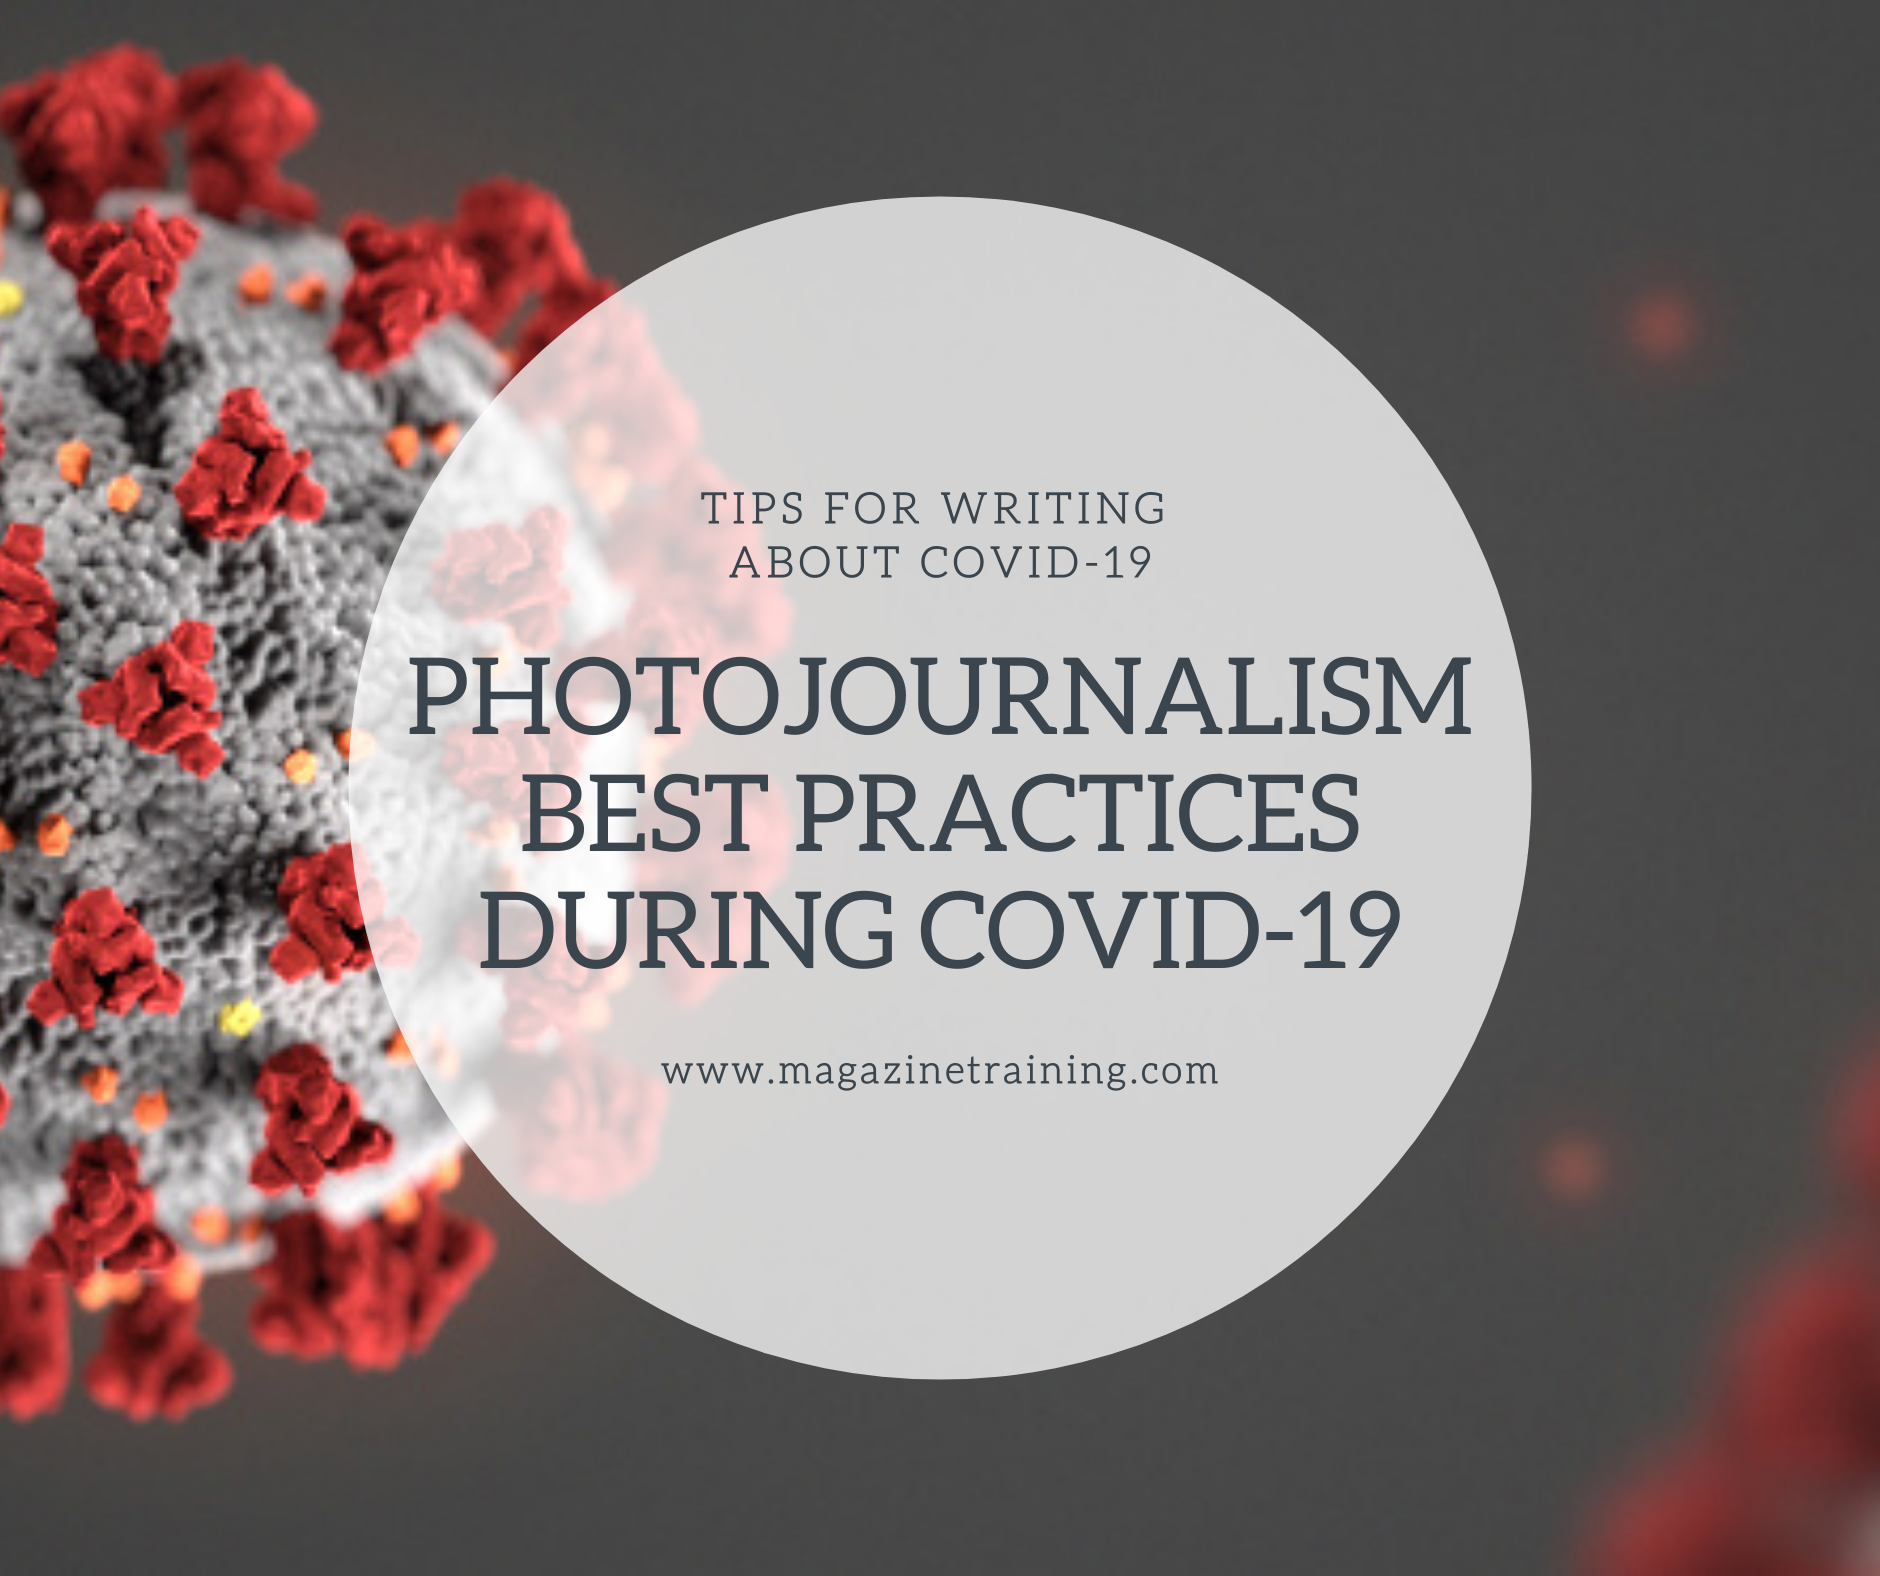 photojournalism best practices